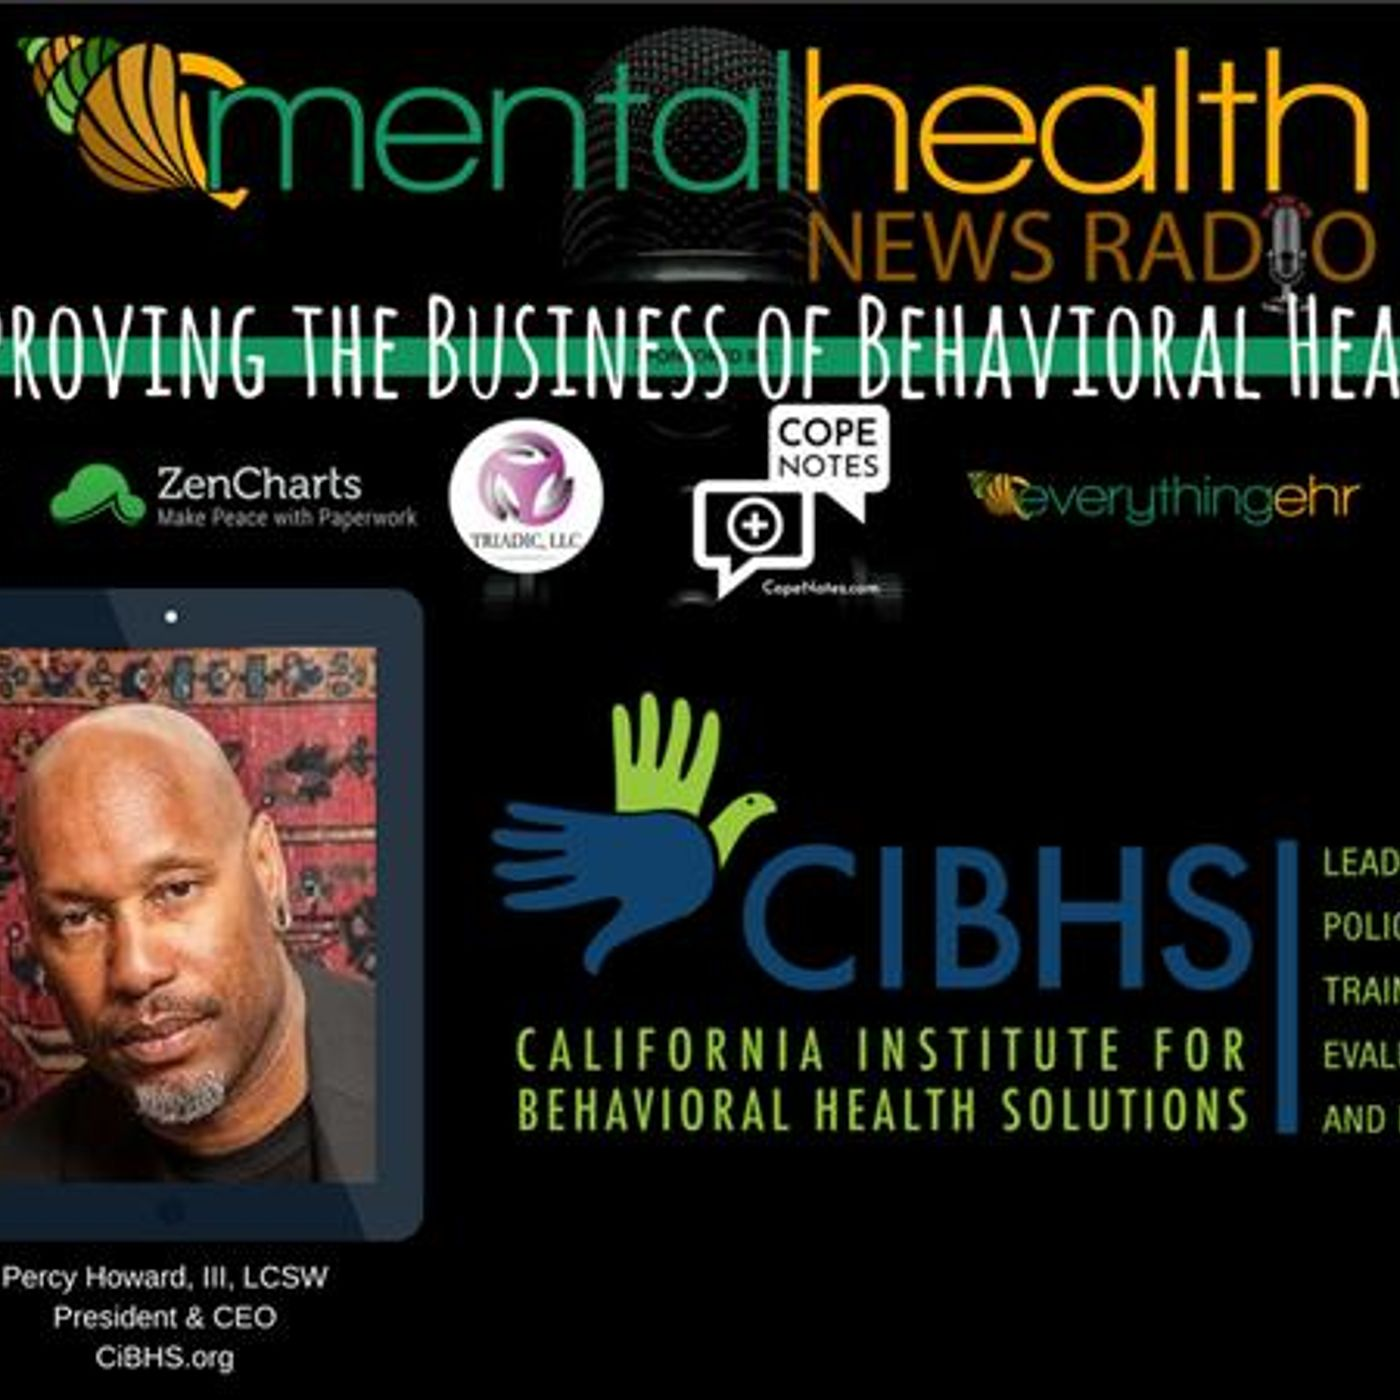 Mental Health News Radio - Improving The Business of Behavioral Health: Percy Howard, III, LCSW